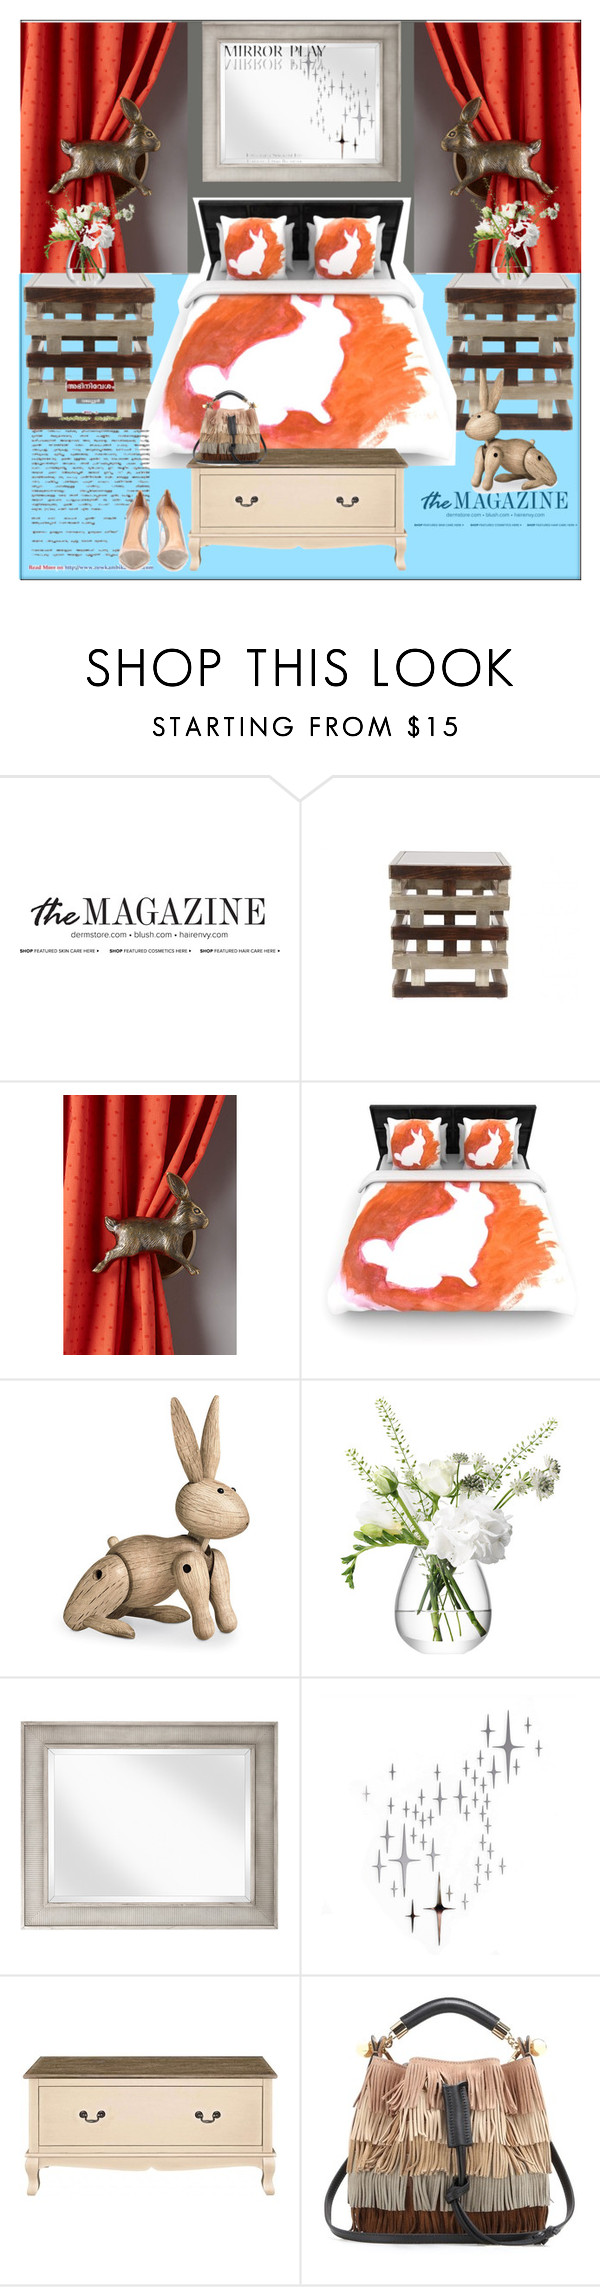 """""""Bunny Bedroom"""" by frenchfriesblackmg ❤ liked on Polyvore featuring interior, interiors, interior design, home, home decor, interior decorating, Jayson Home, Kay Bojesen, LSA International and DOMESTIC"""